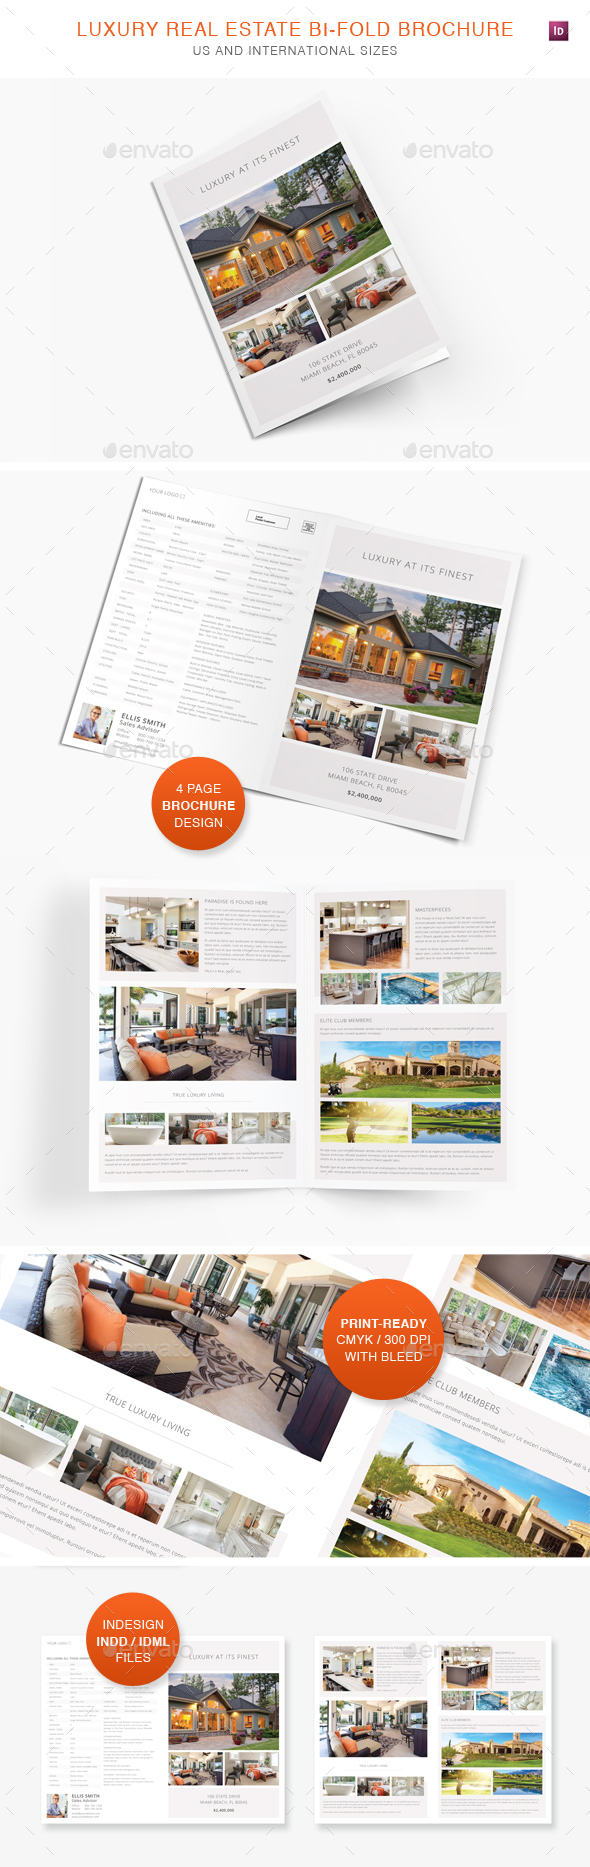 Luxury Real Estate Bi-Fold Brochure - Informational Brochures